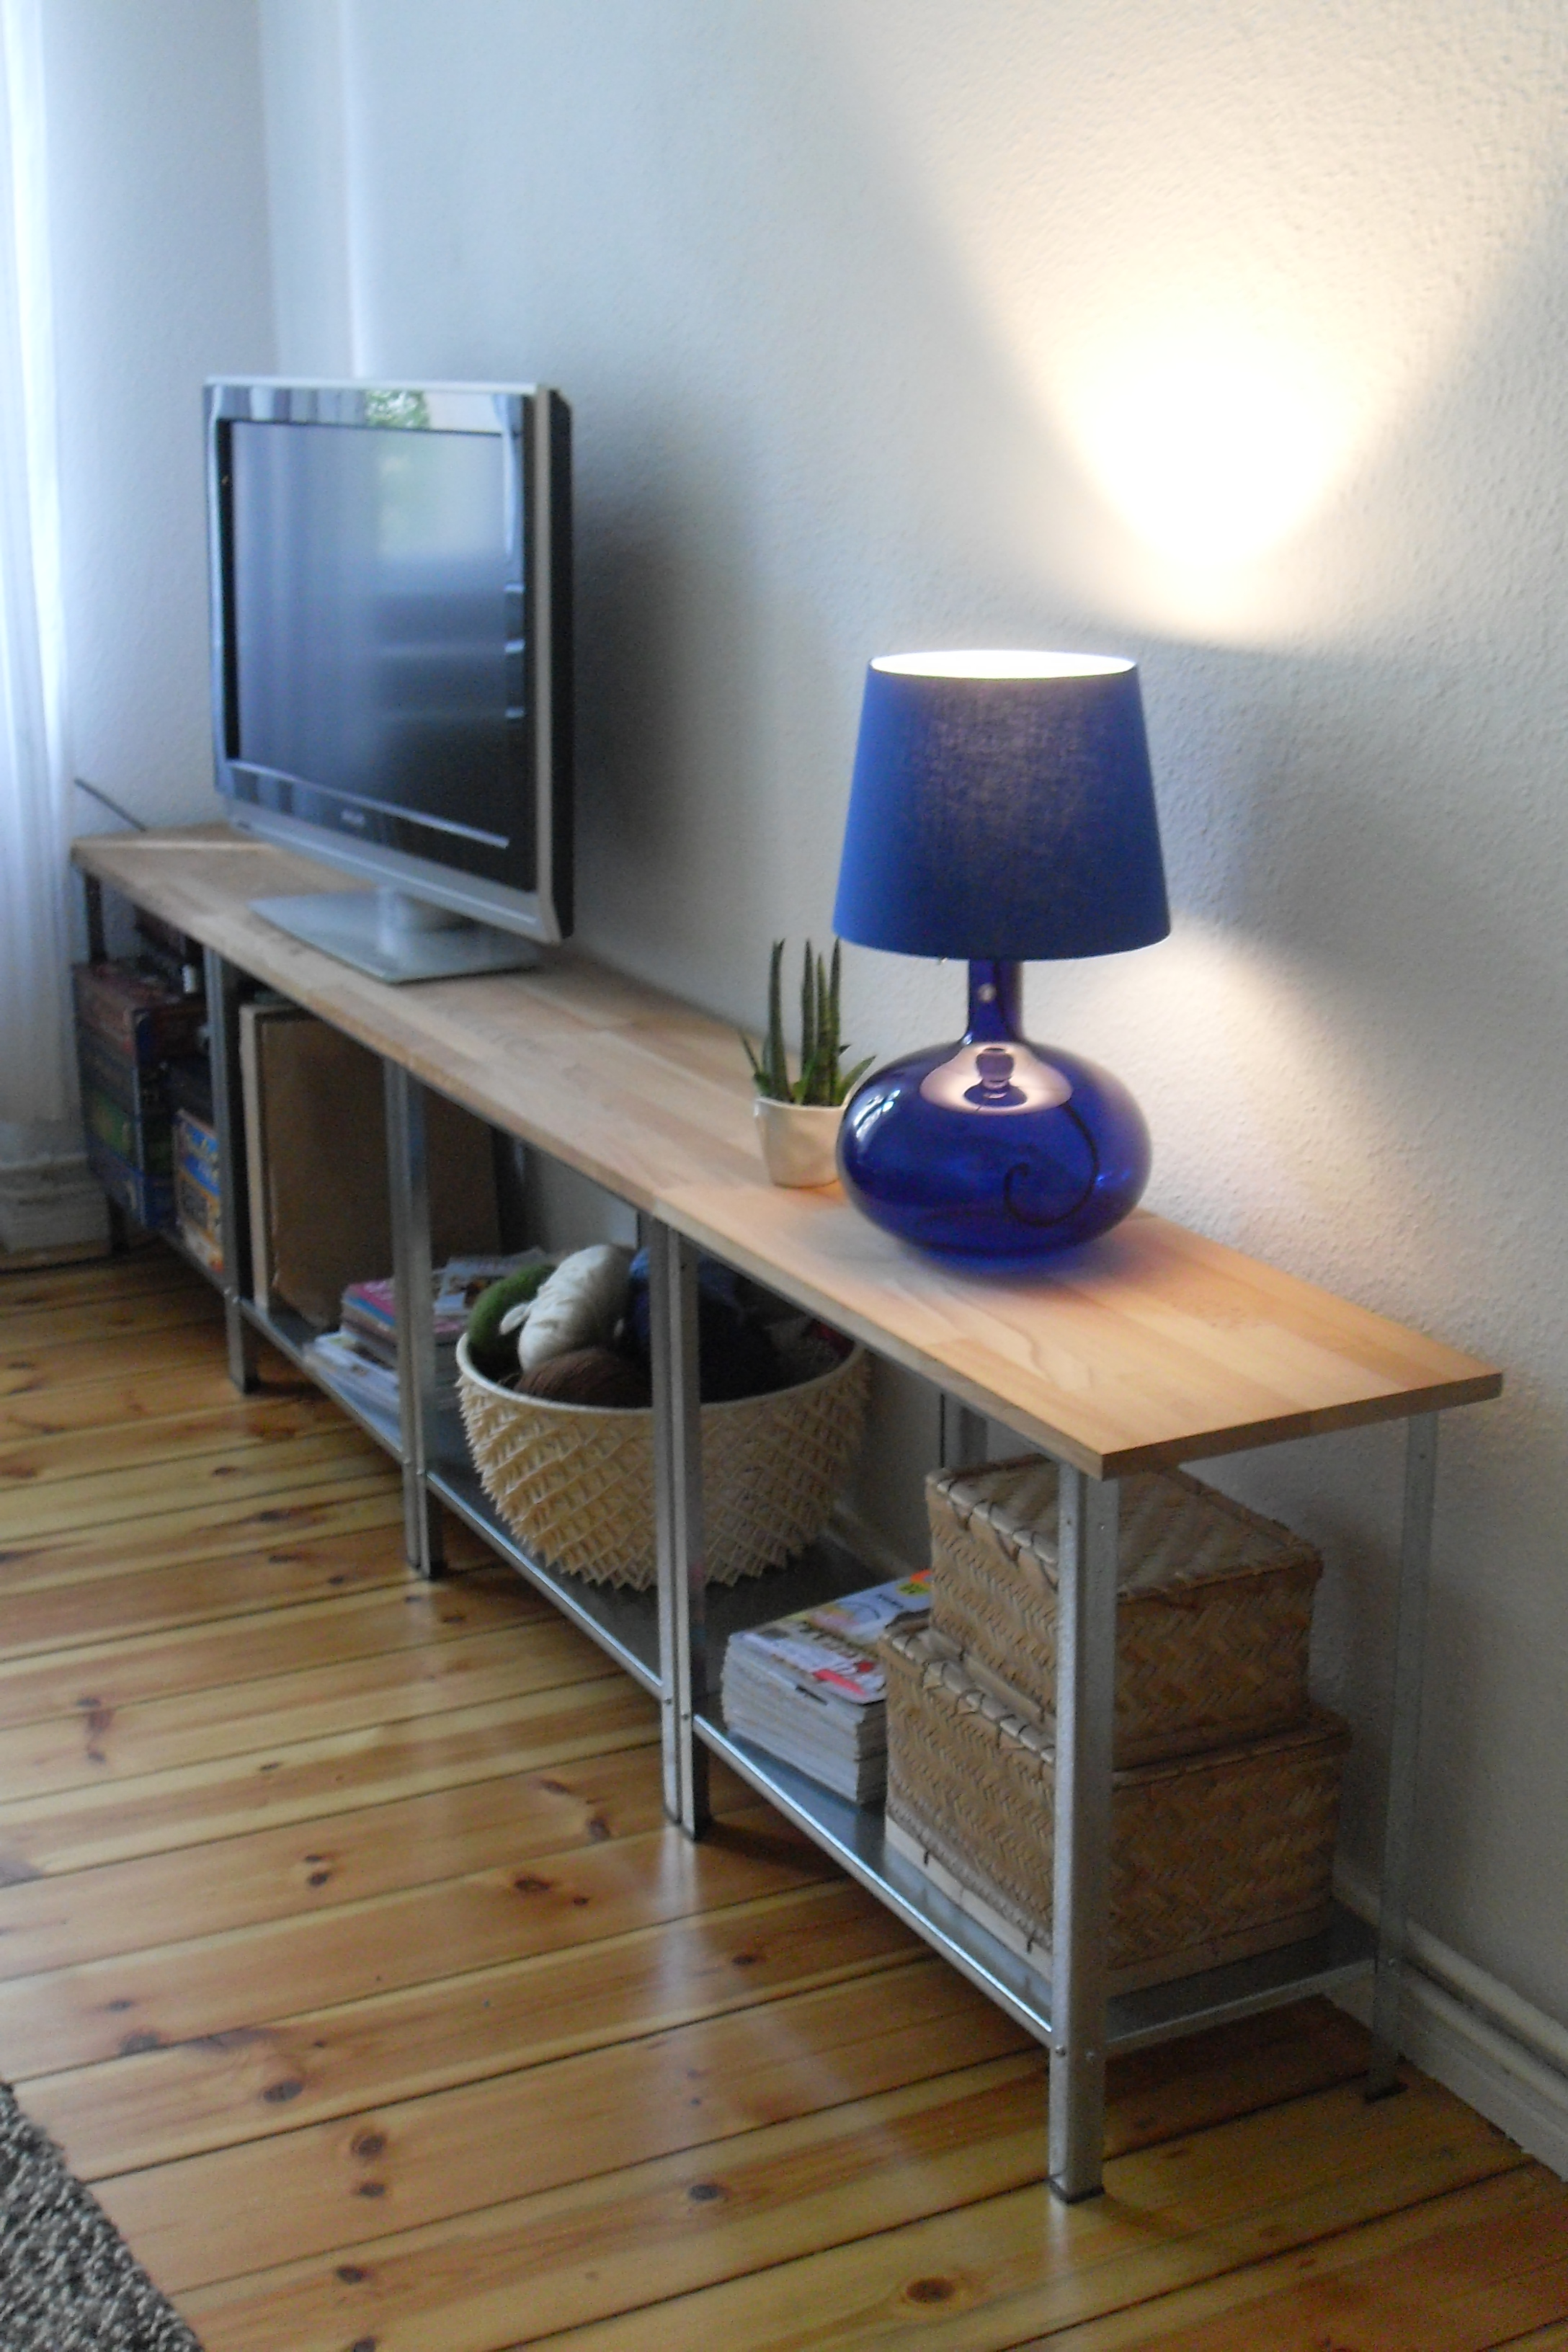 Diy Regal Diy Sideboard Tv Regal Ikea Hack Hyllis Stroemanns Kleines